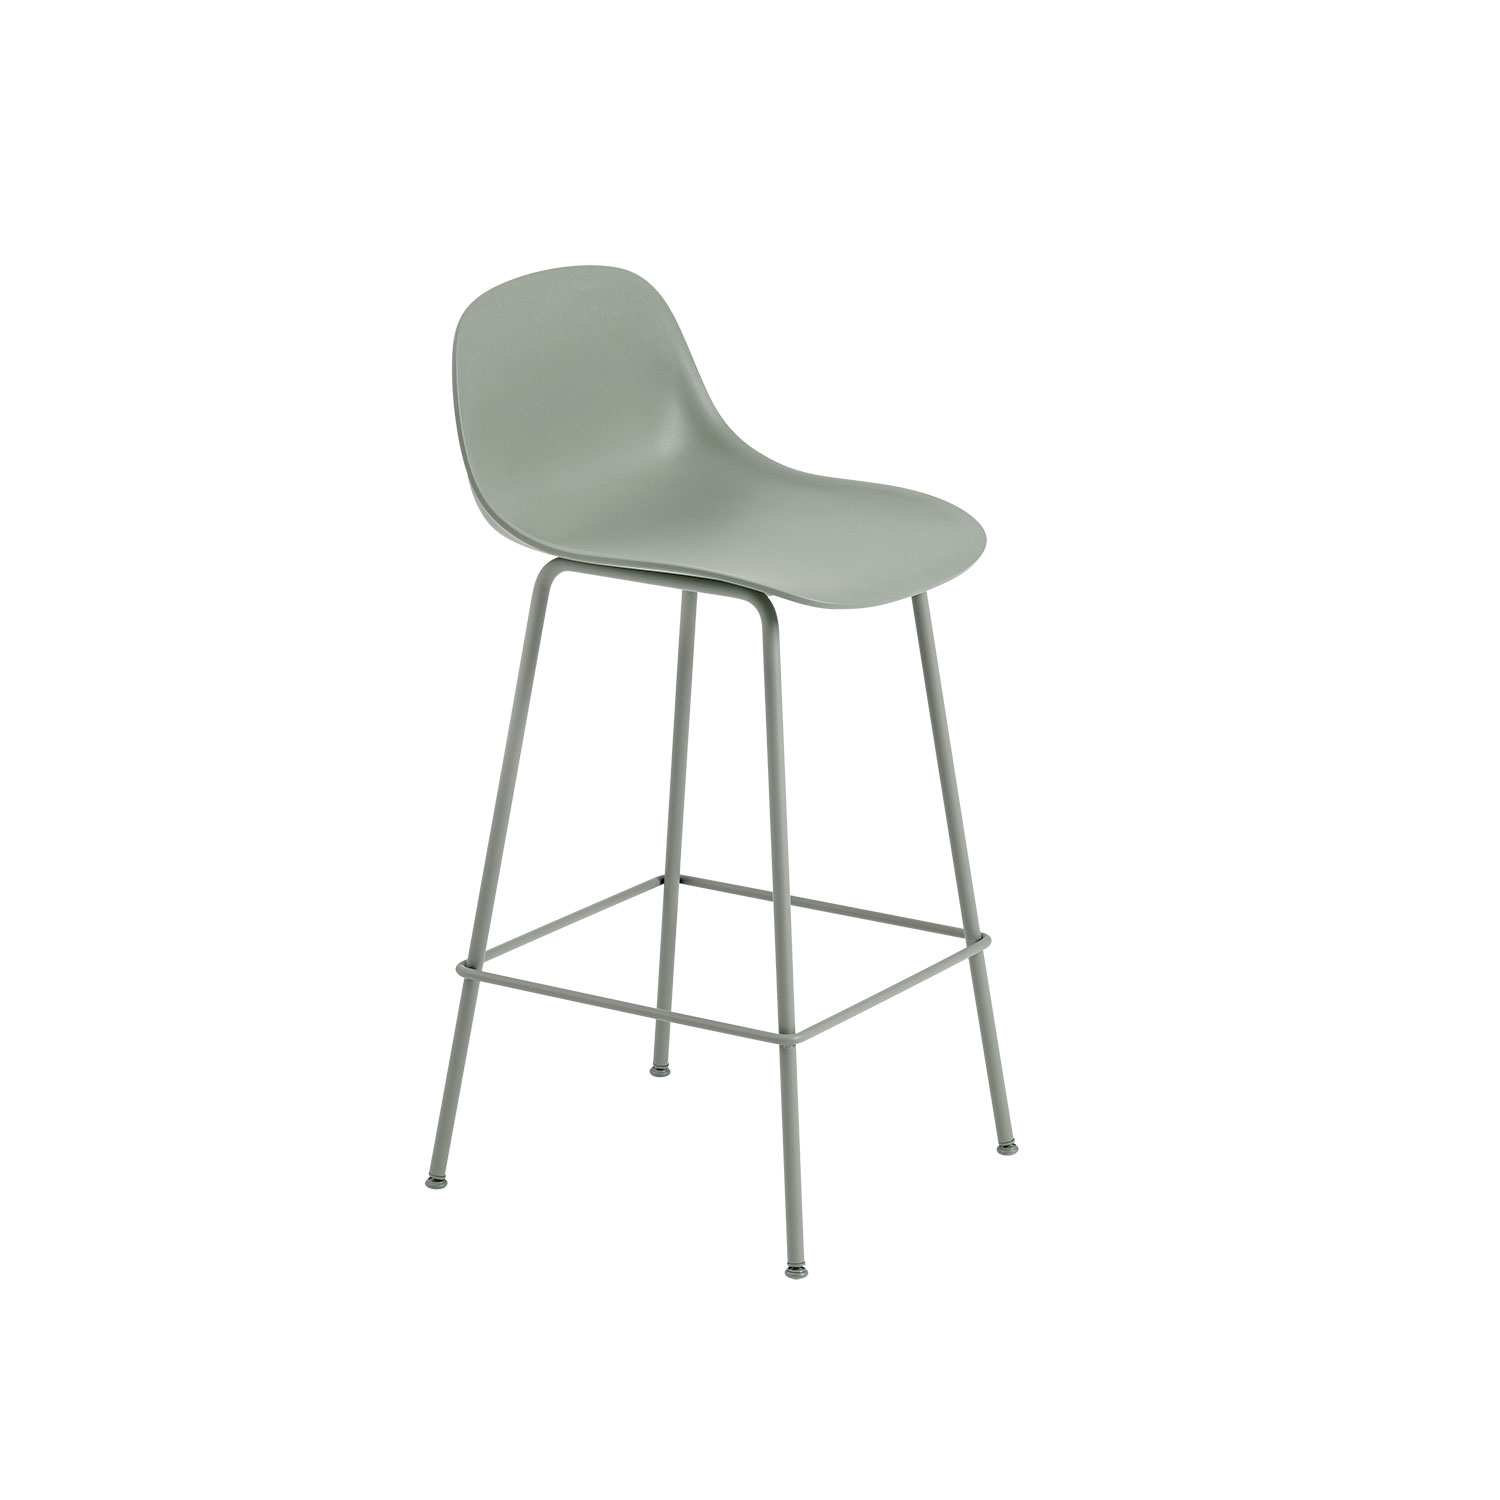 Fiber Tube bar stool w.back, dusty green